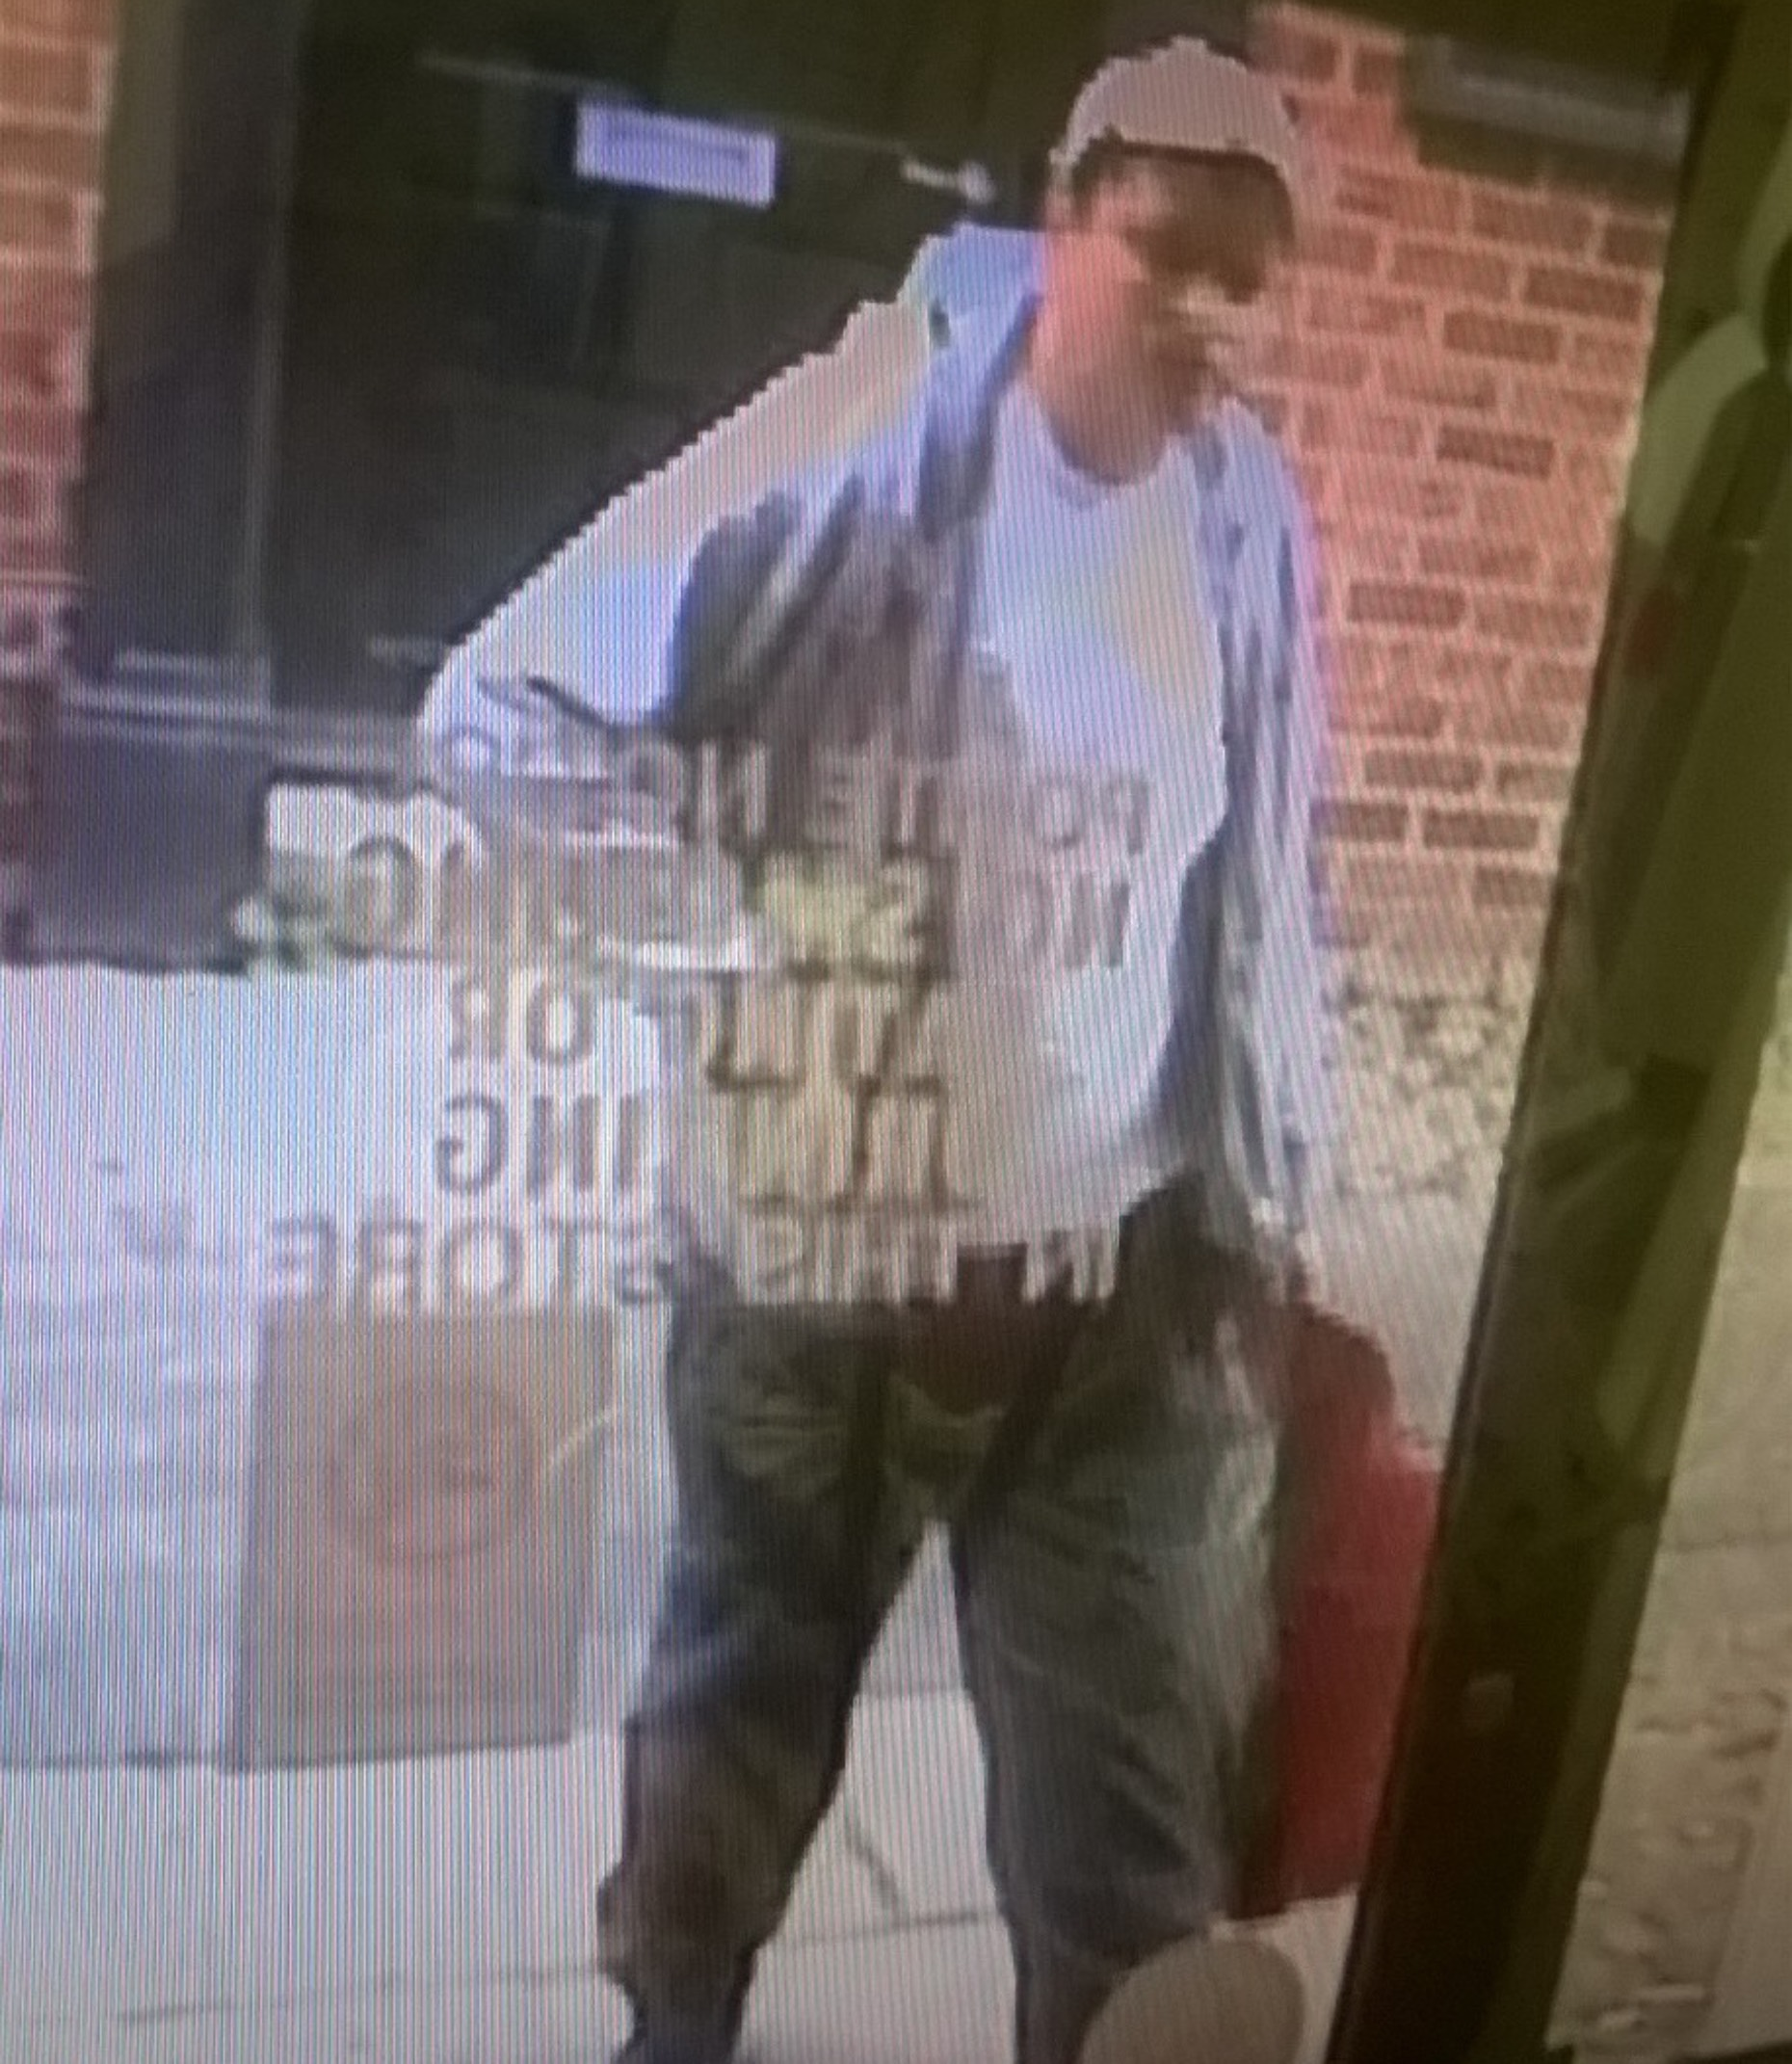 Police would like to speak with this man in connection with an alleged theft.